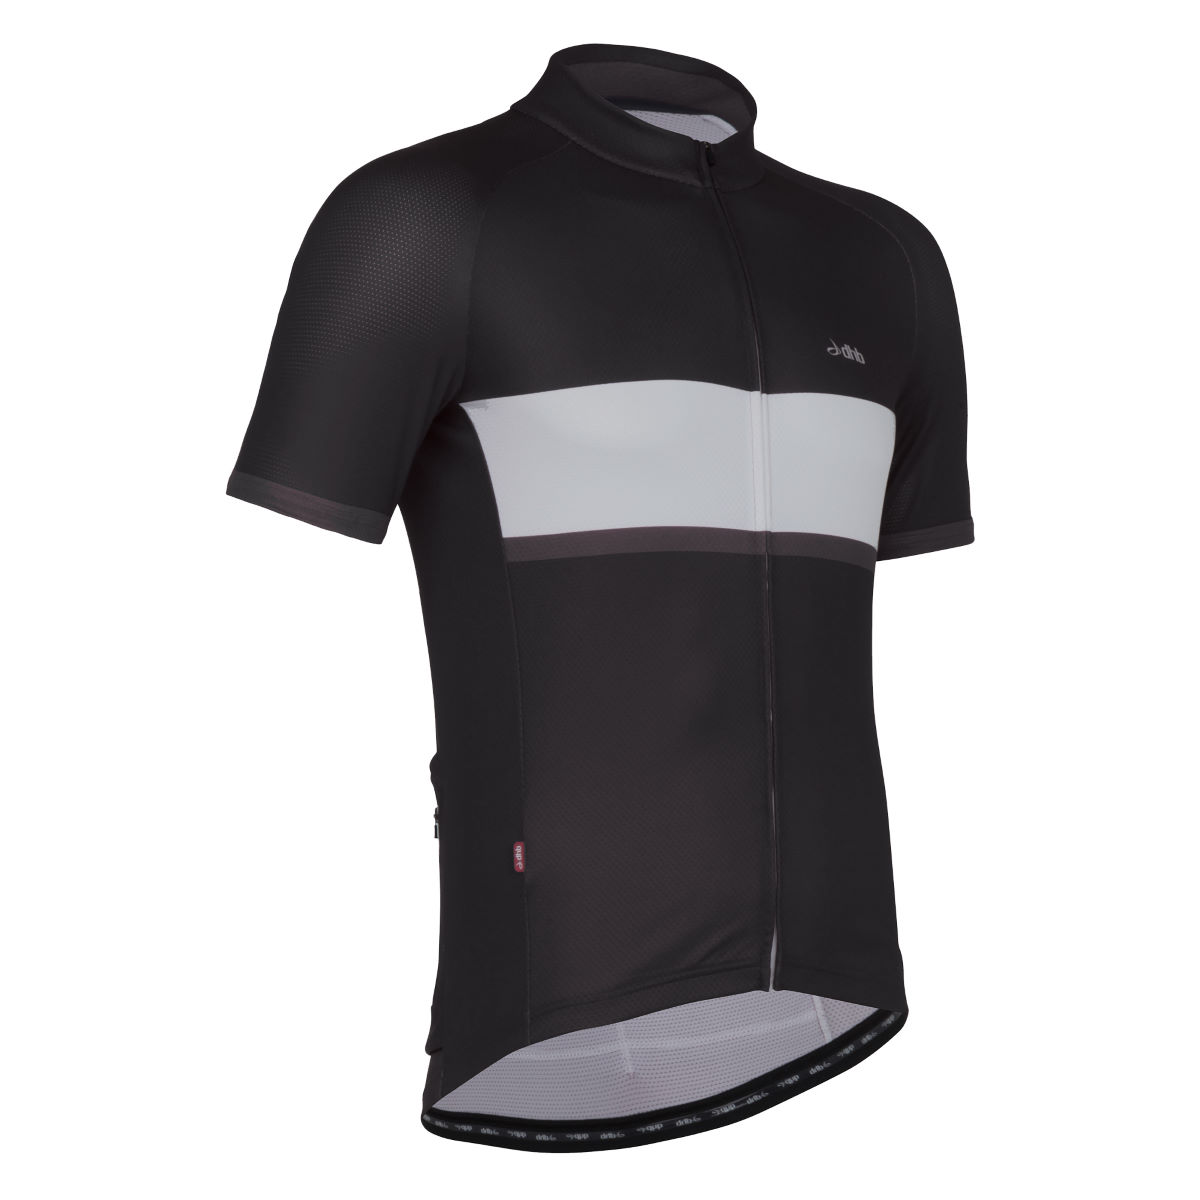 dhb Classic Short Sleeve Jersey